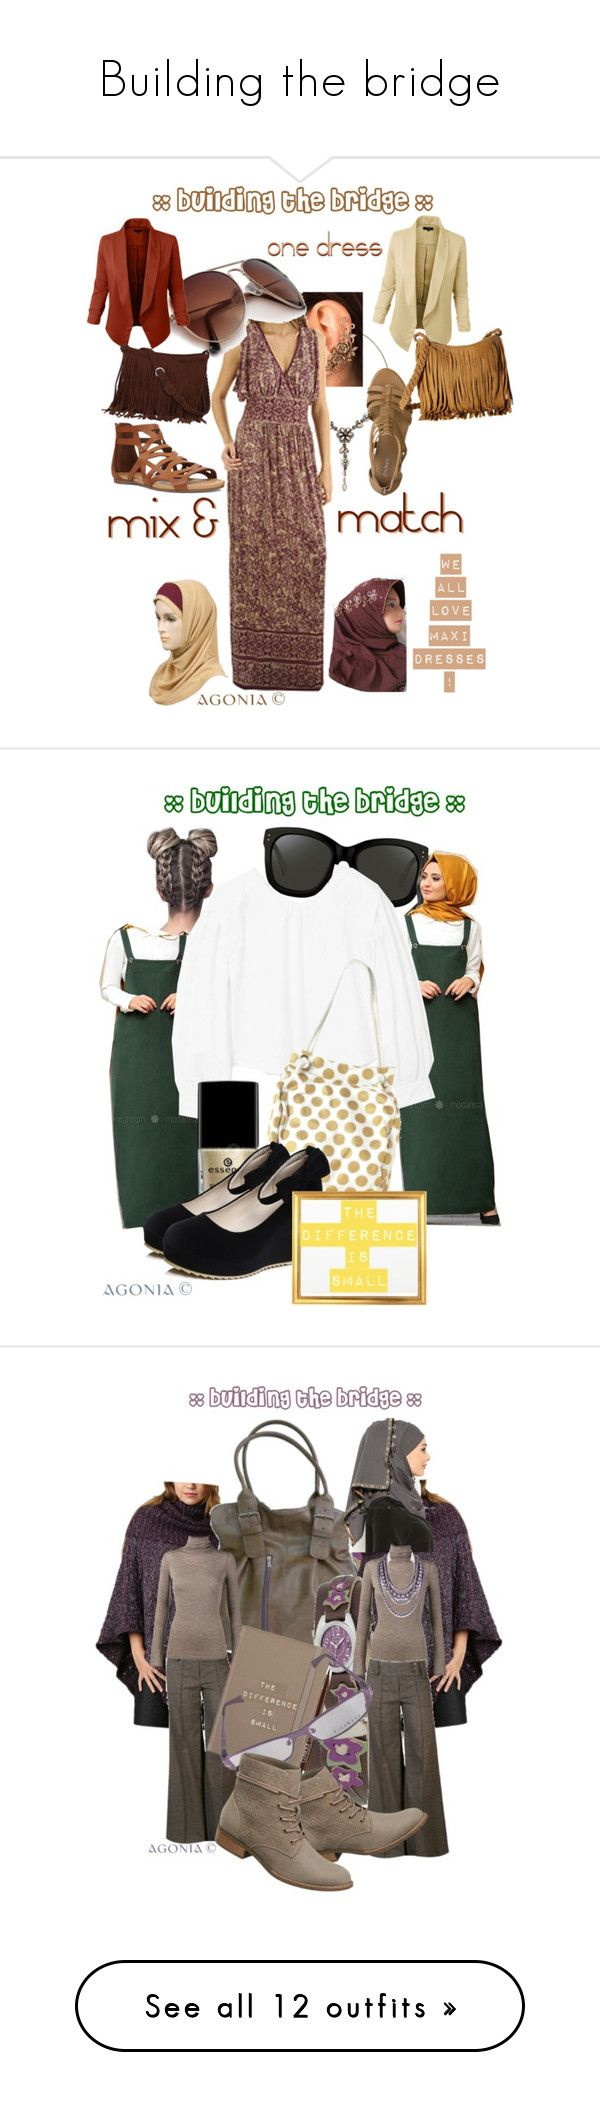 """""""Building the bridge"""" by agonia ❤ liked on Polyvore featuring Monsoon, LE3NO, Scully, Religion Clothing, Amira, Nine West, Linda Farrow, MANGO, Dorothy Perkins and By Lassen"""